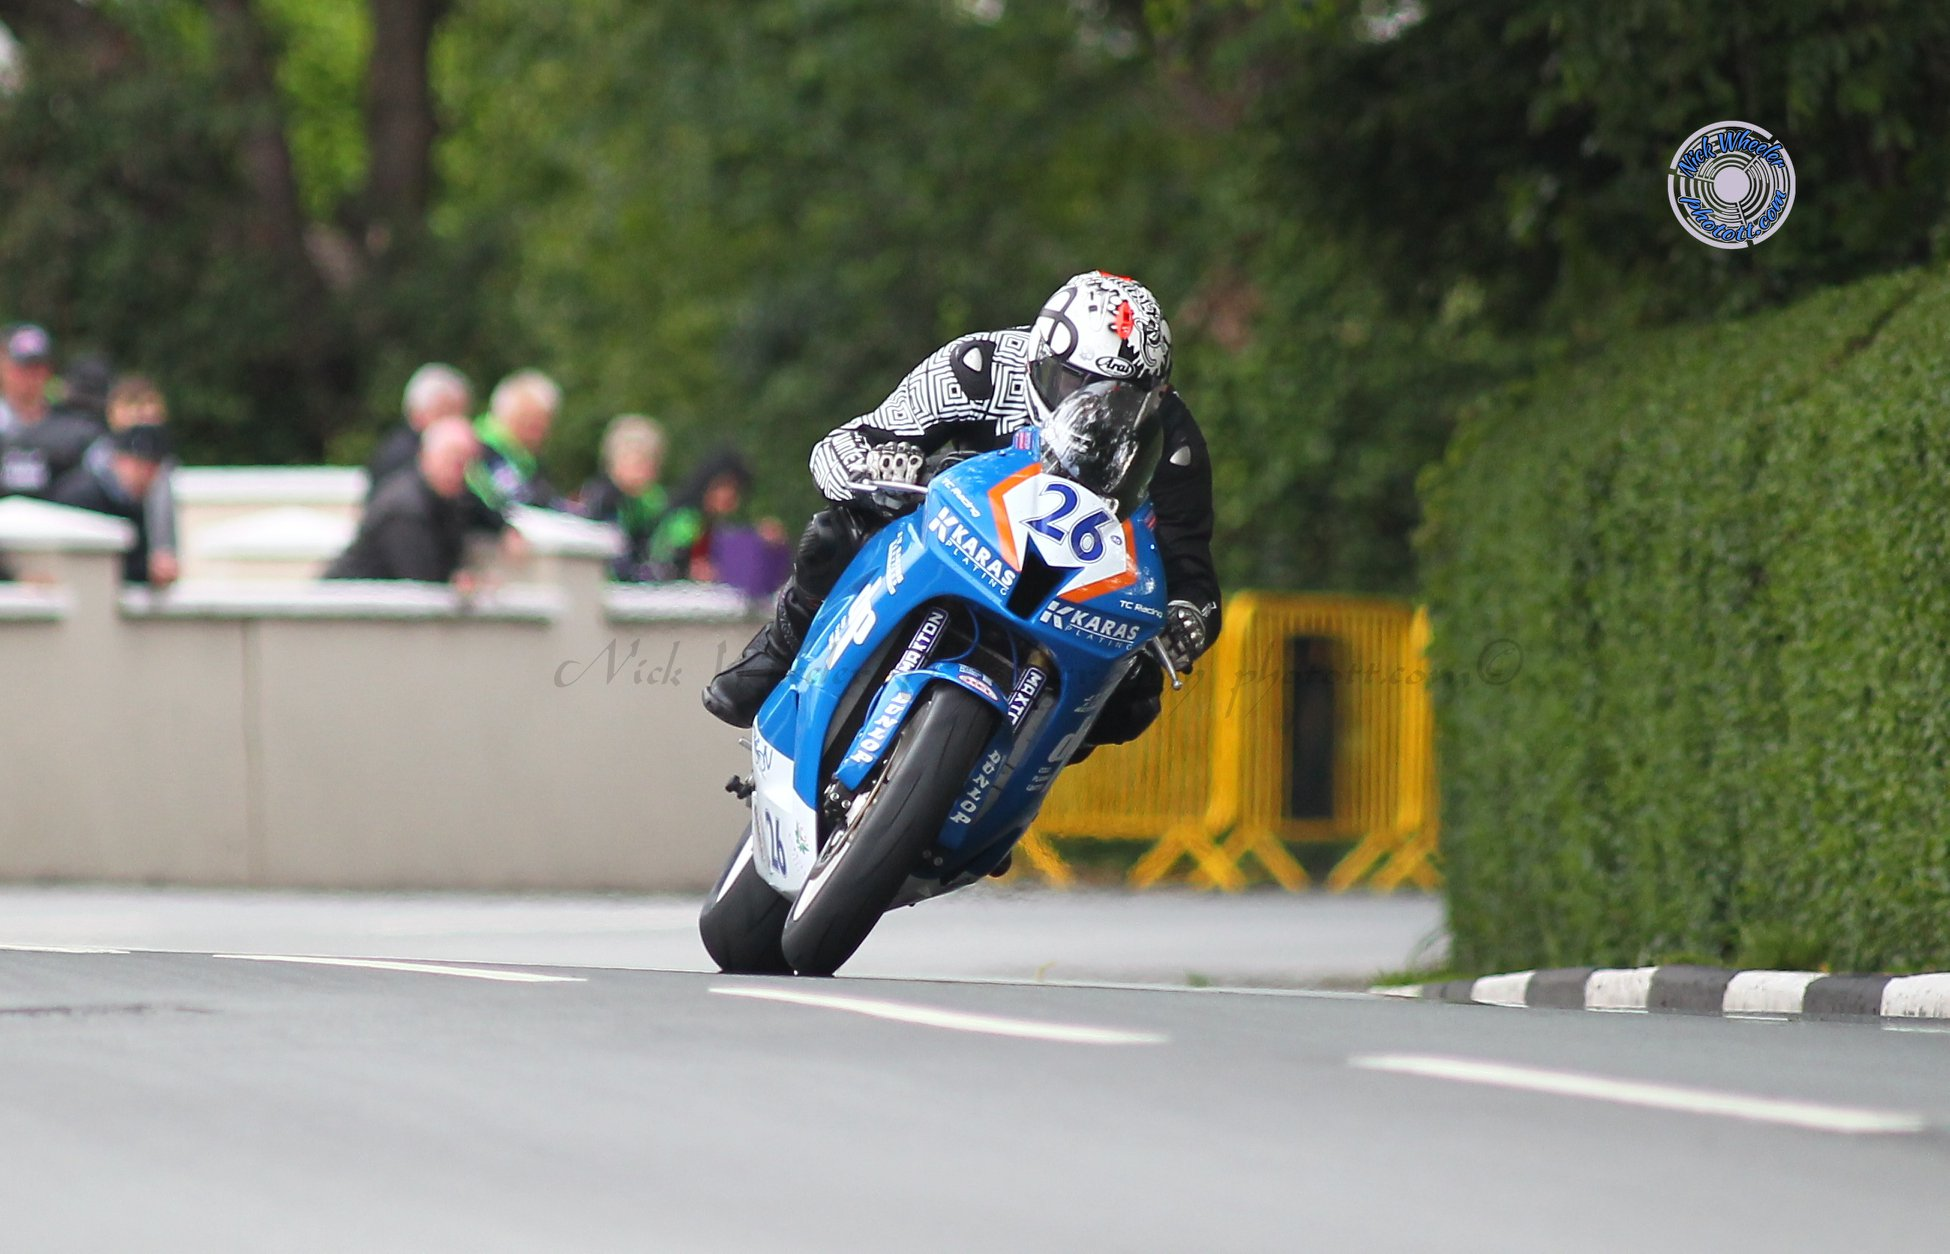 WH Racing's Trummer Confirms Cookstown 100 Debut